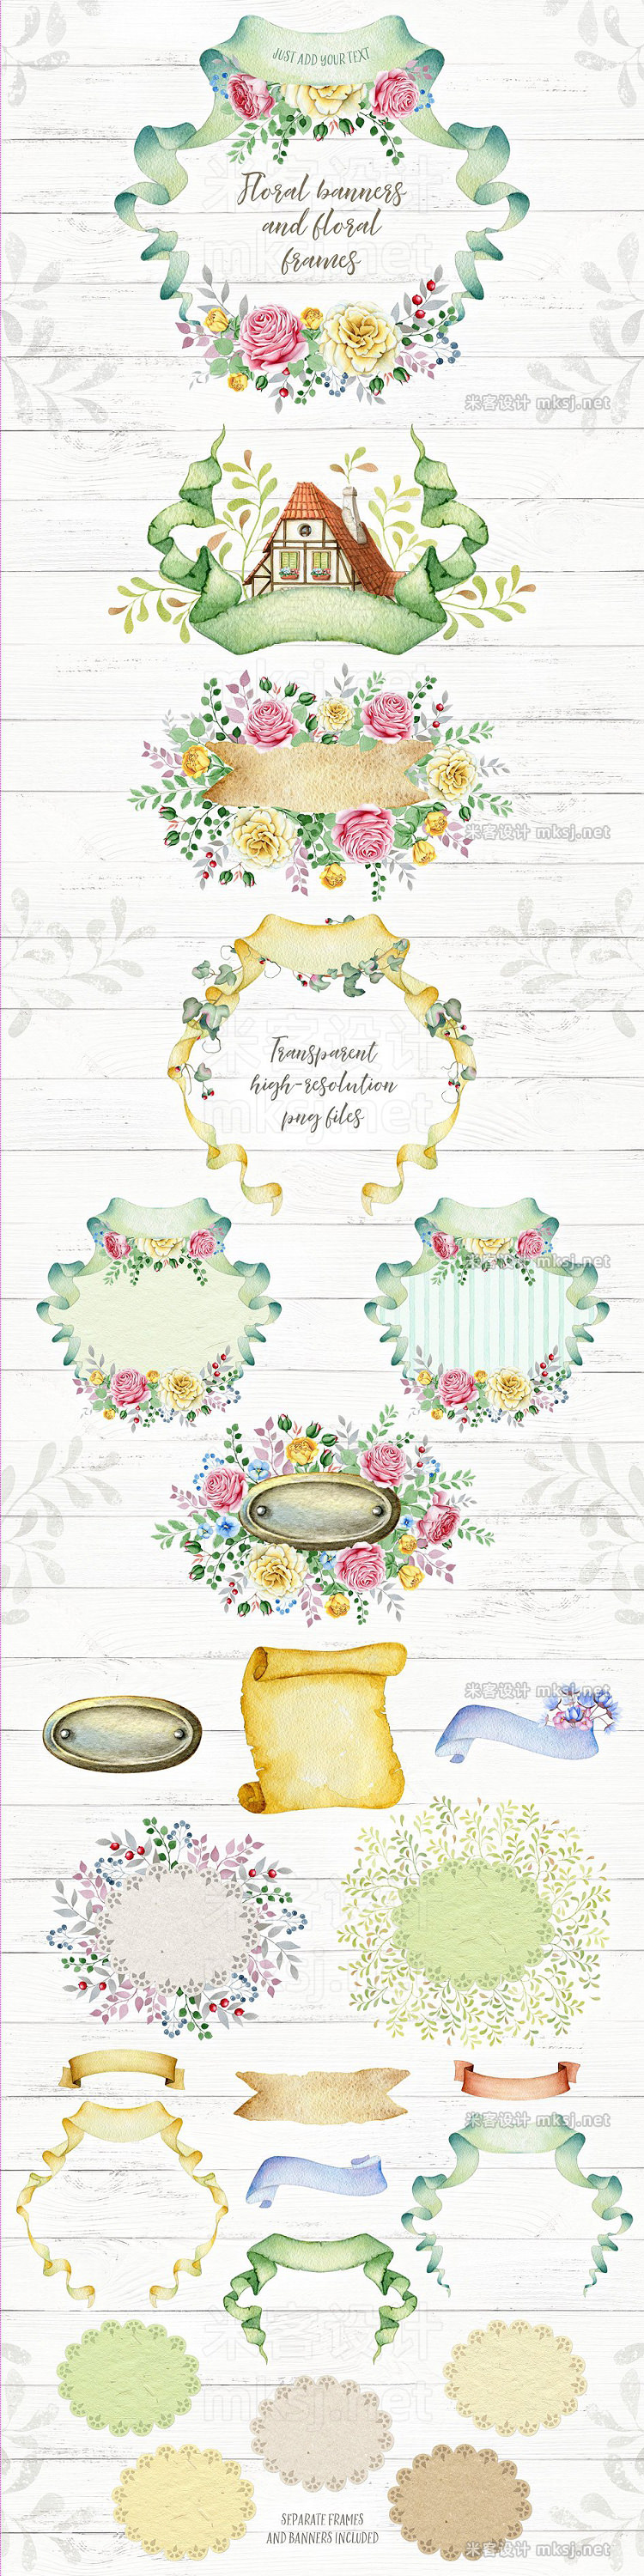 png素材 Wreaths and Bouquets collection V3